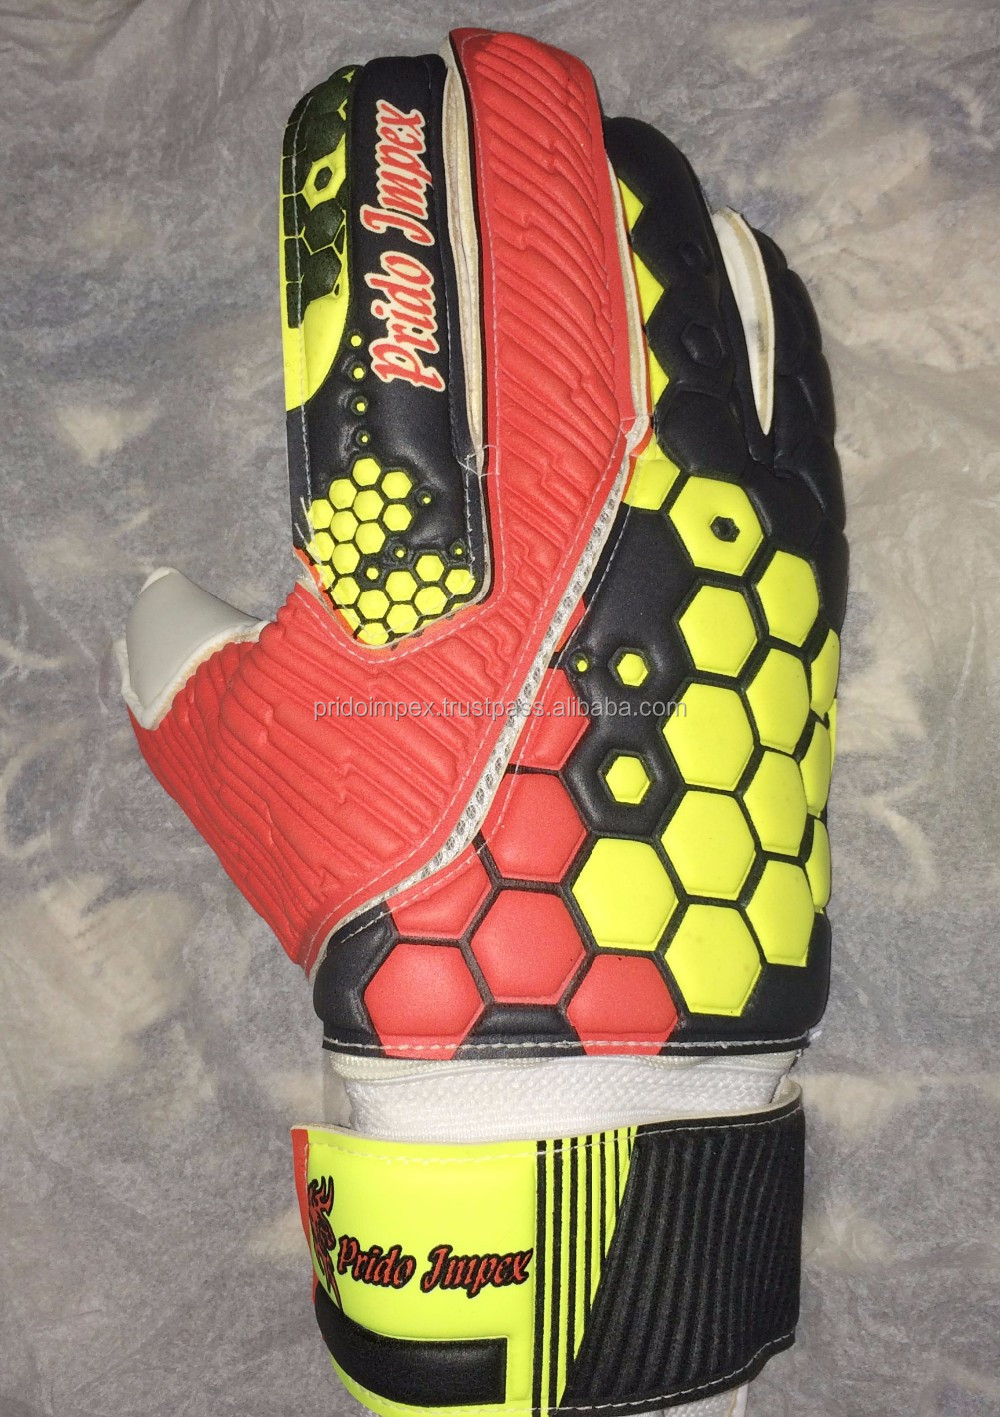 Soccer products soccer goalkeeper products goalkeeper accessories football accessories